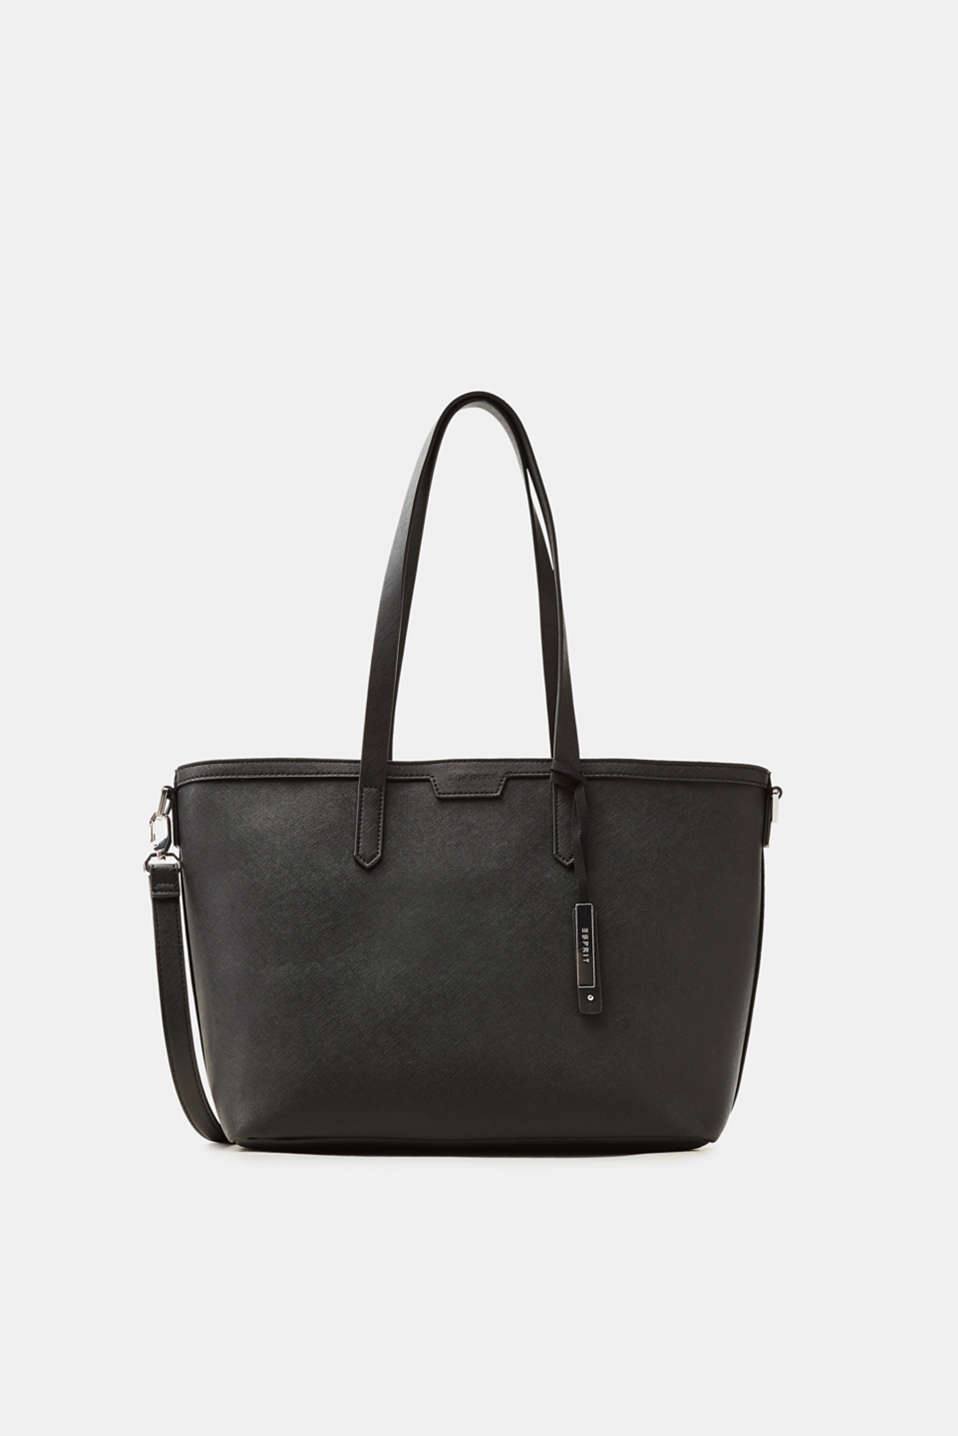 Esprit - Tote bag in textured faux leather